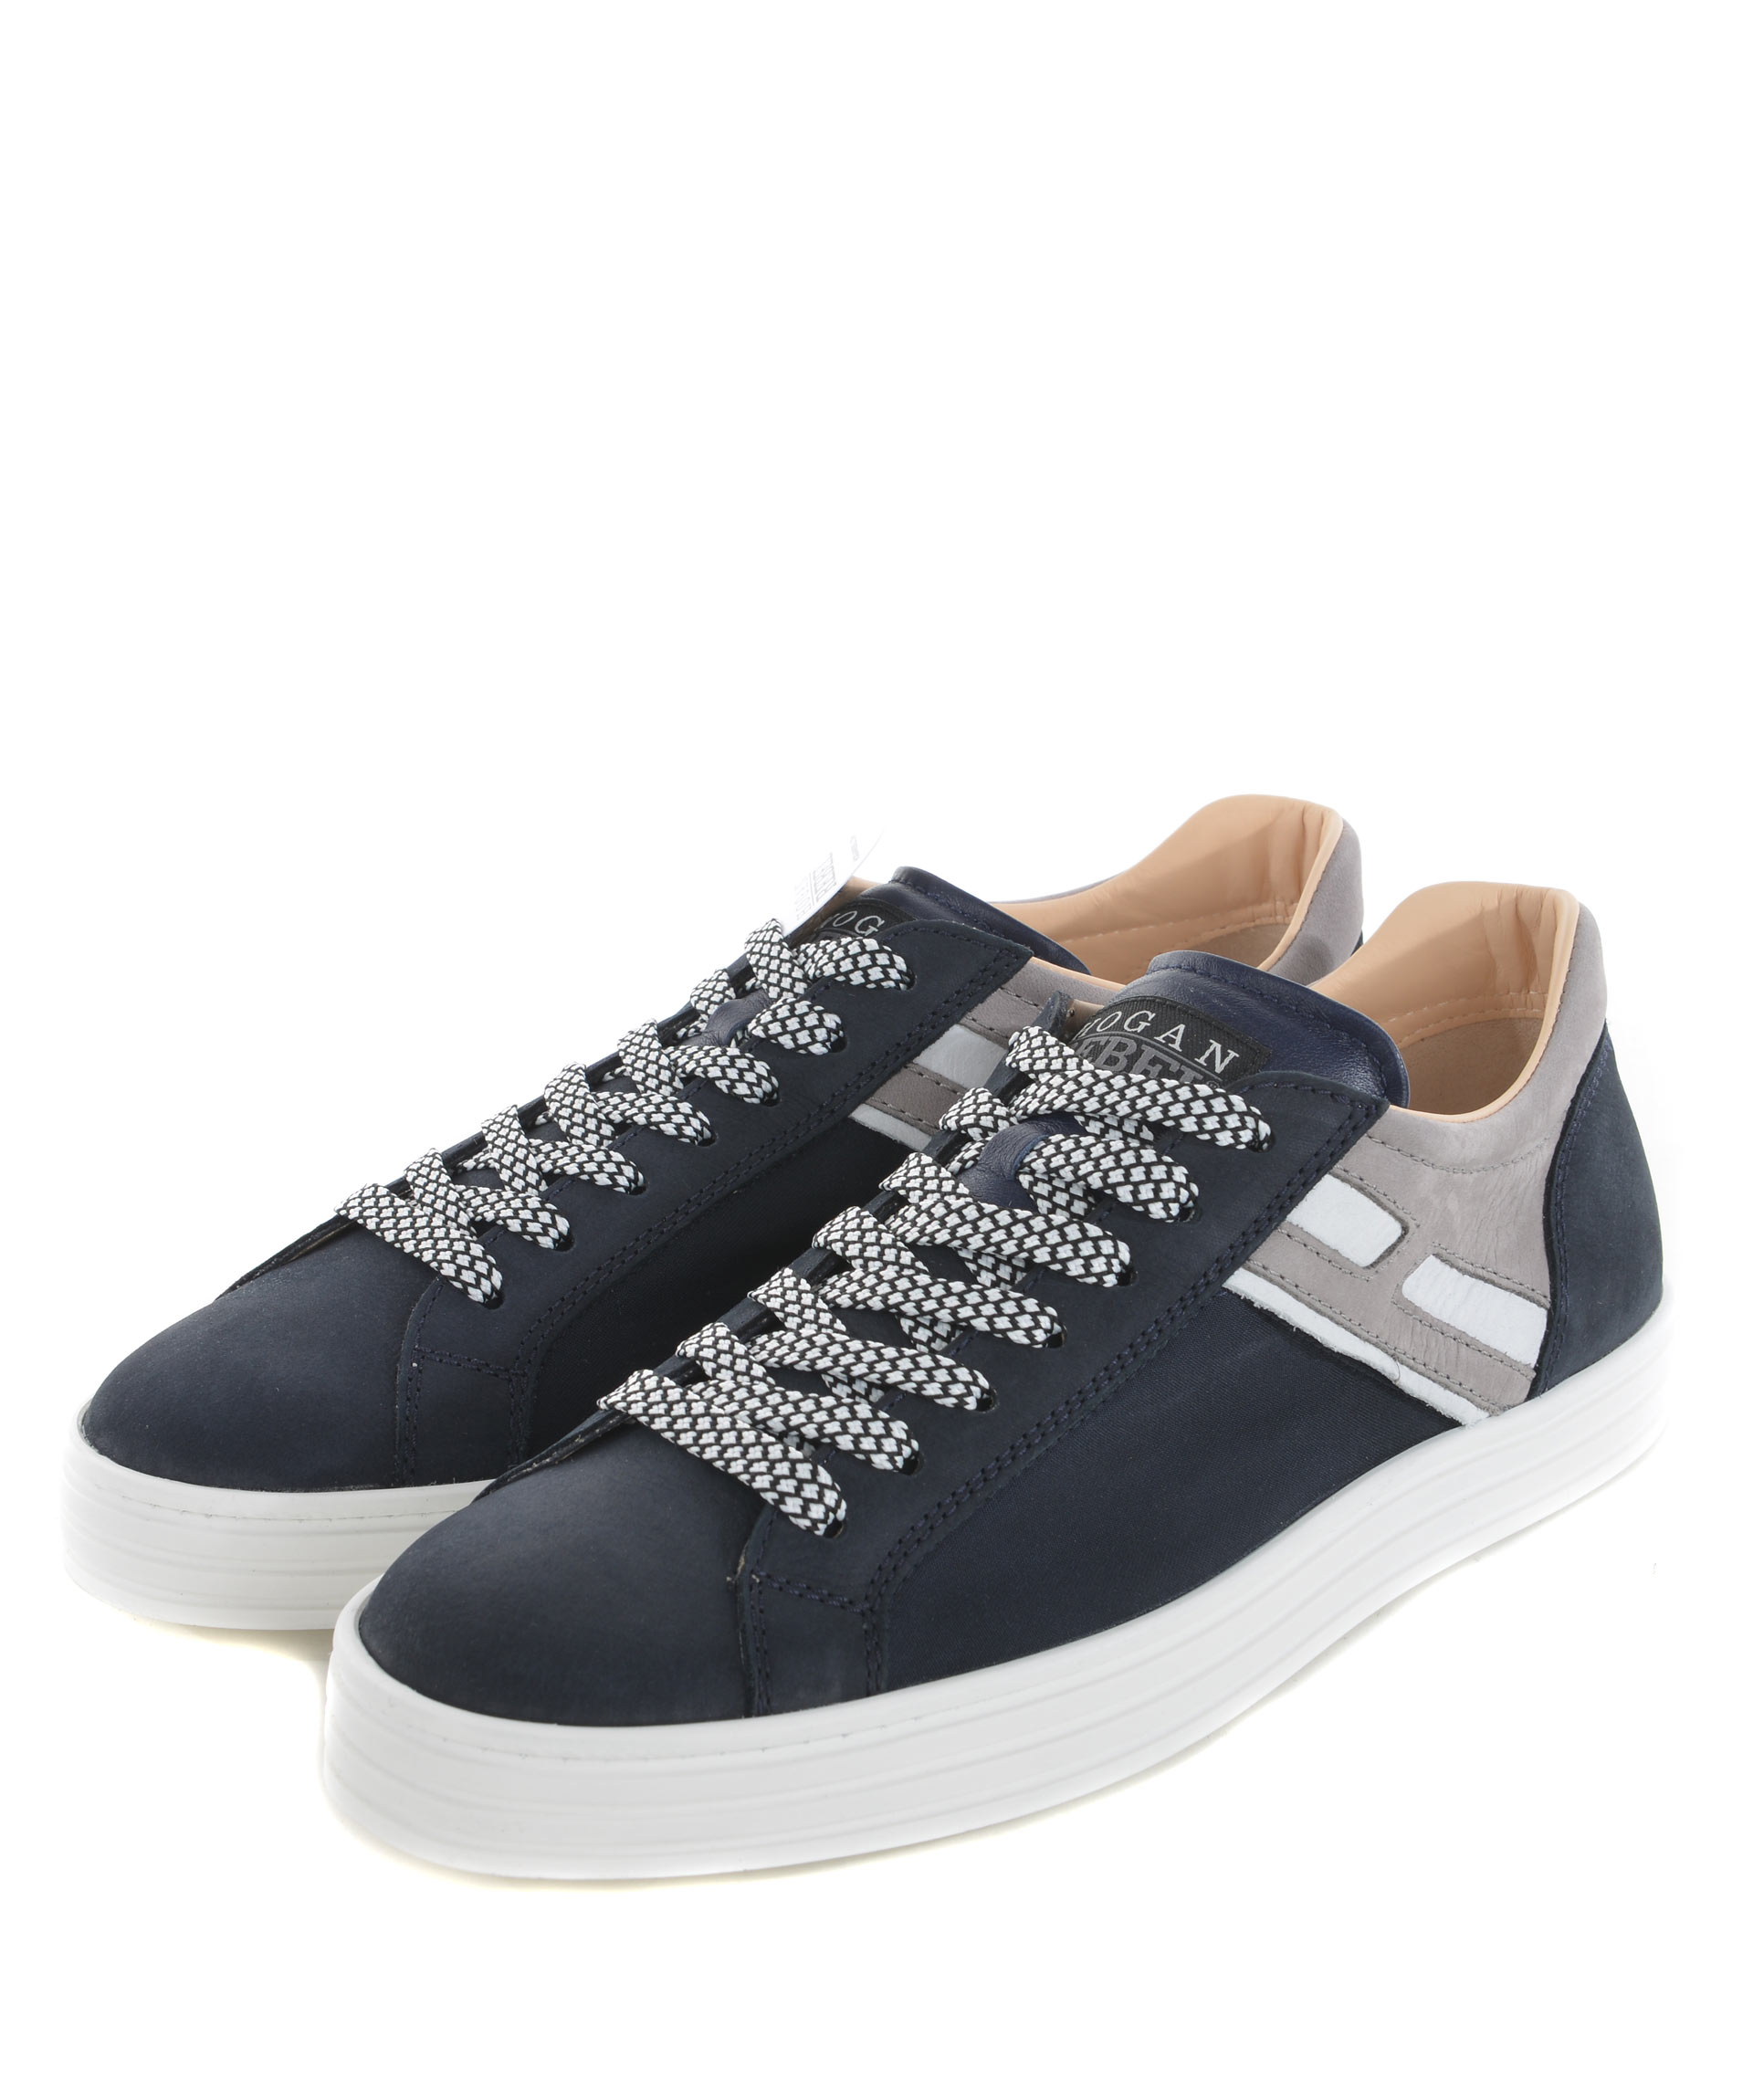 sneakers uomo hogan rebel